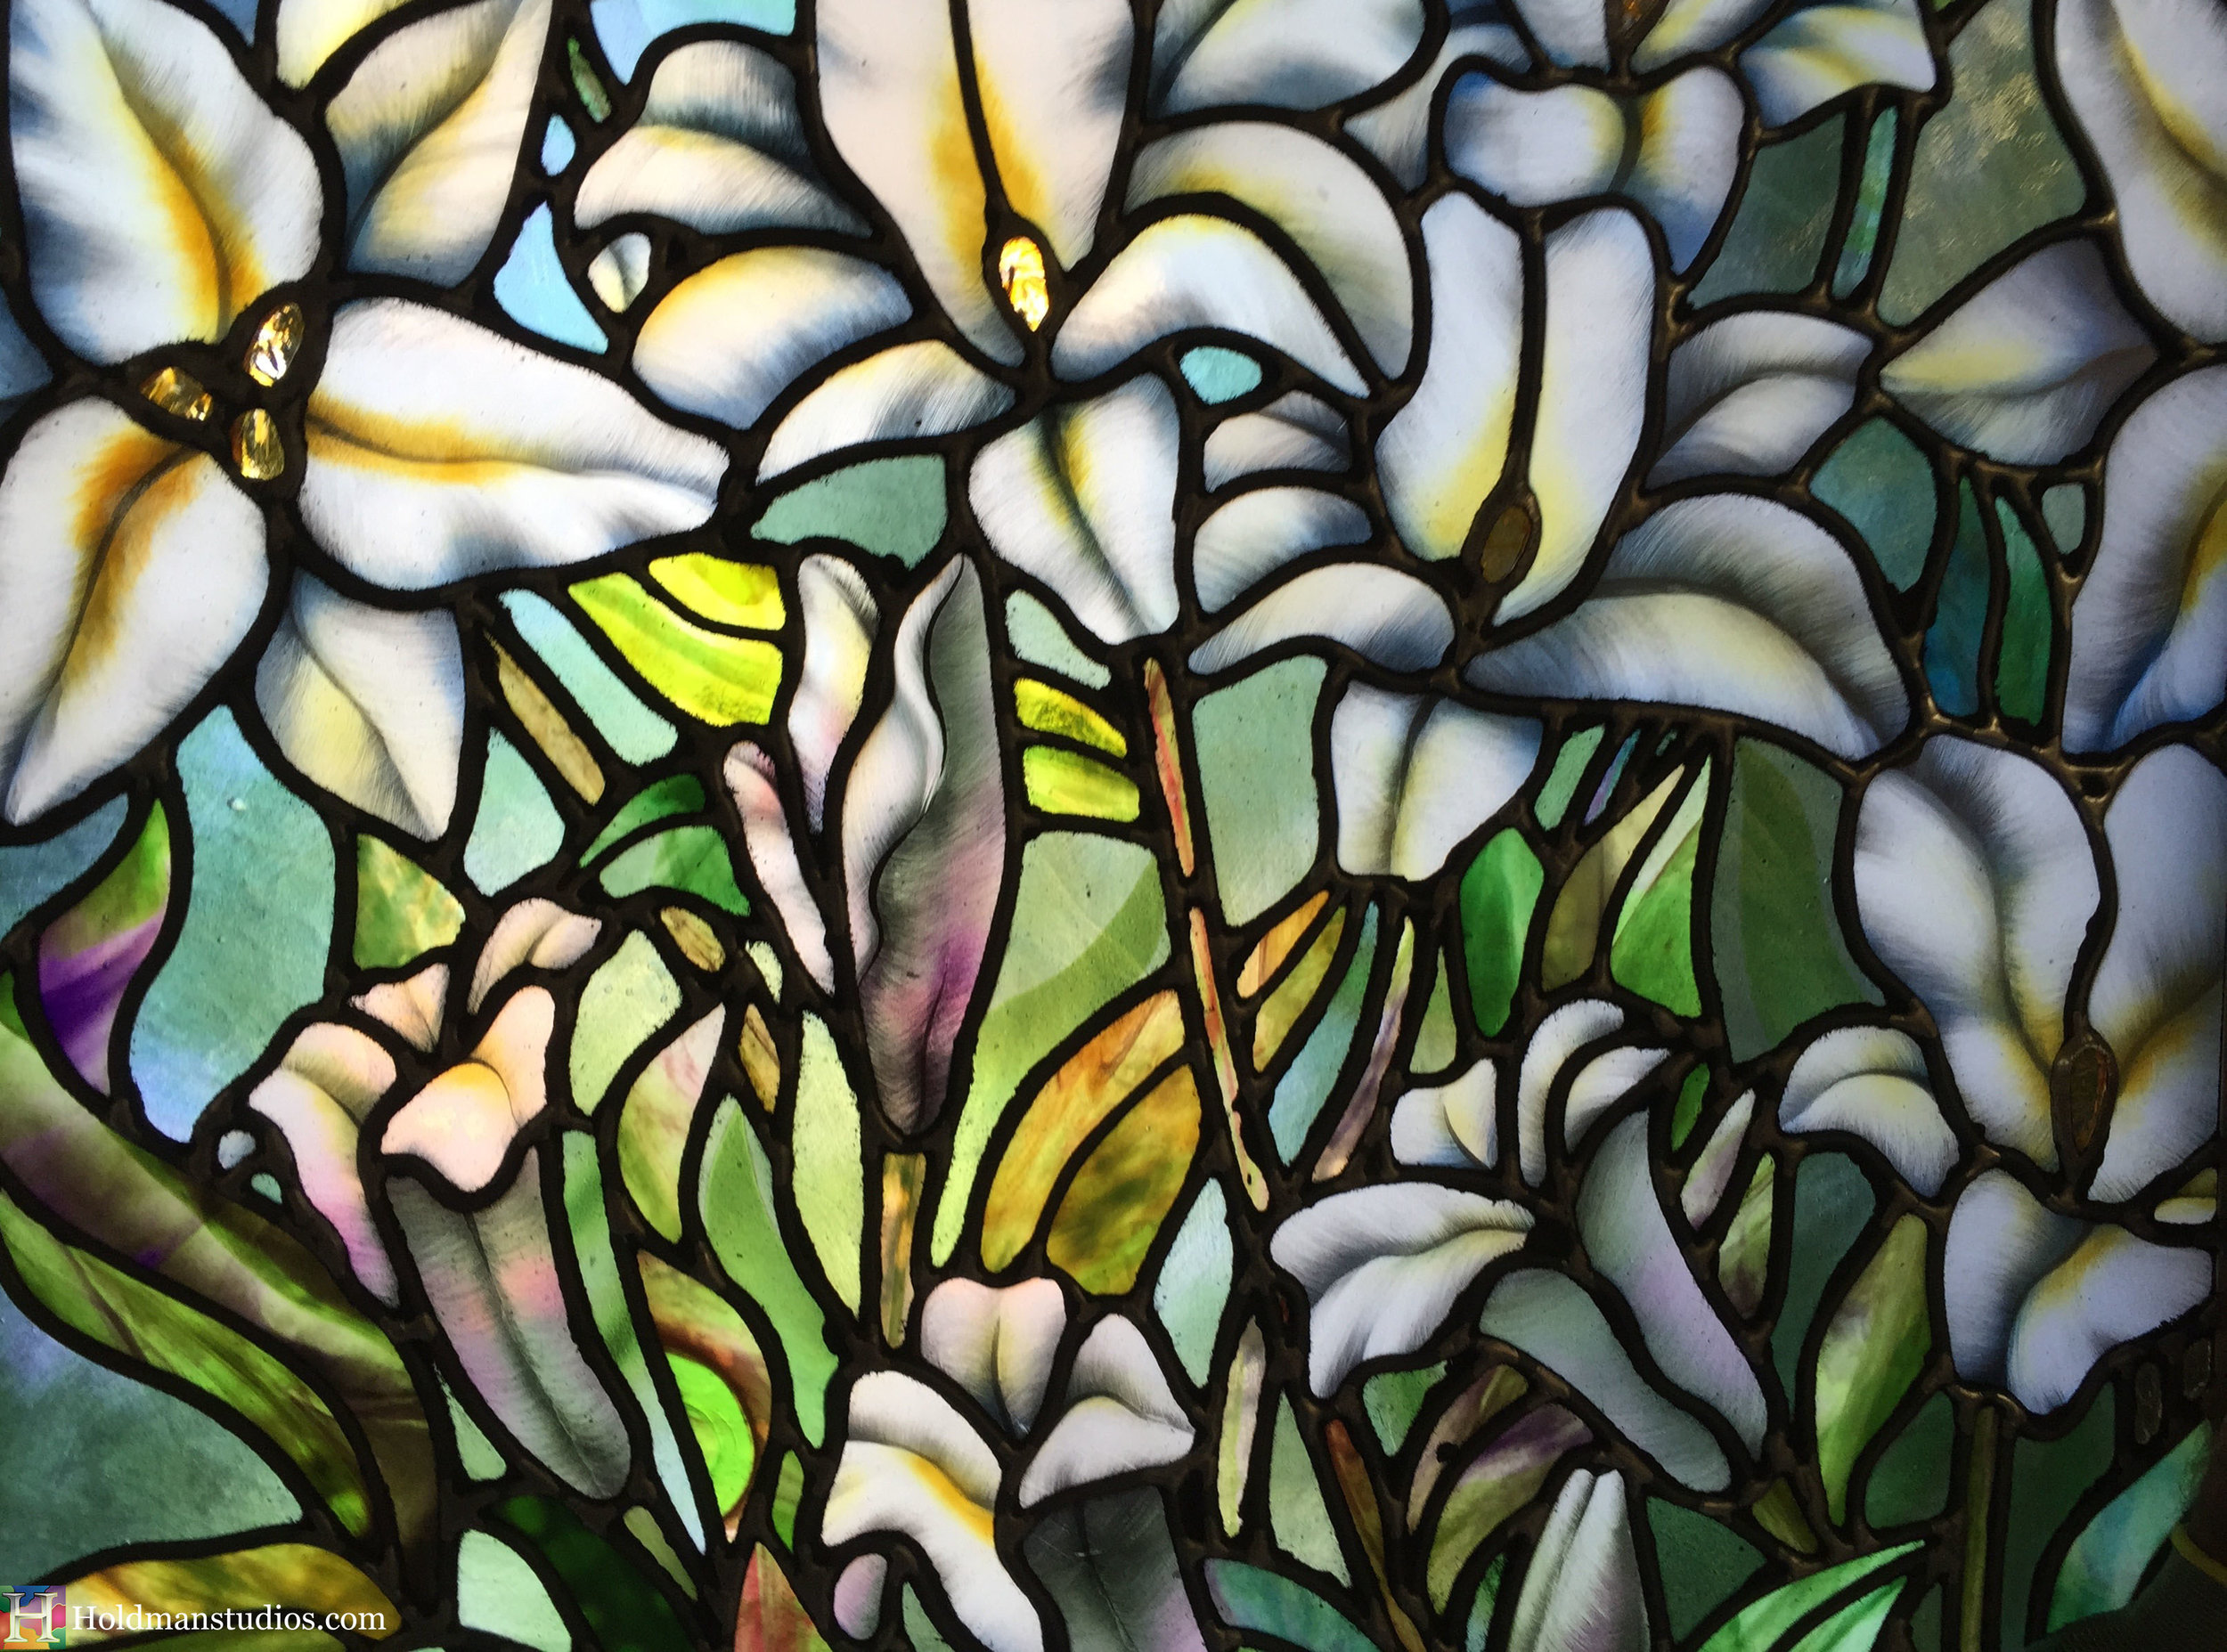 Holdman-Studios-Stained-Glass-Paris-LDS-Temple-Madonna-Lily-Flowers-Leaves-Crop-Window.jpg